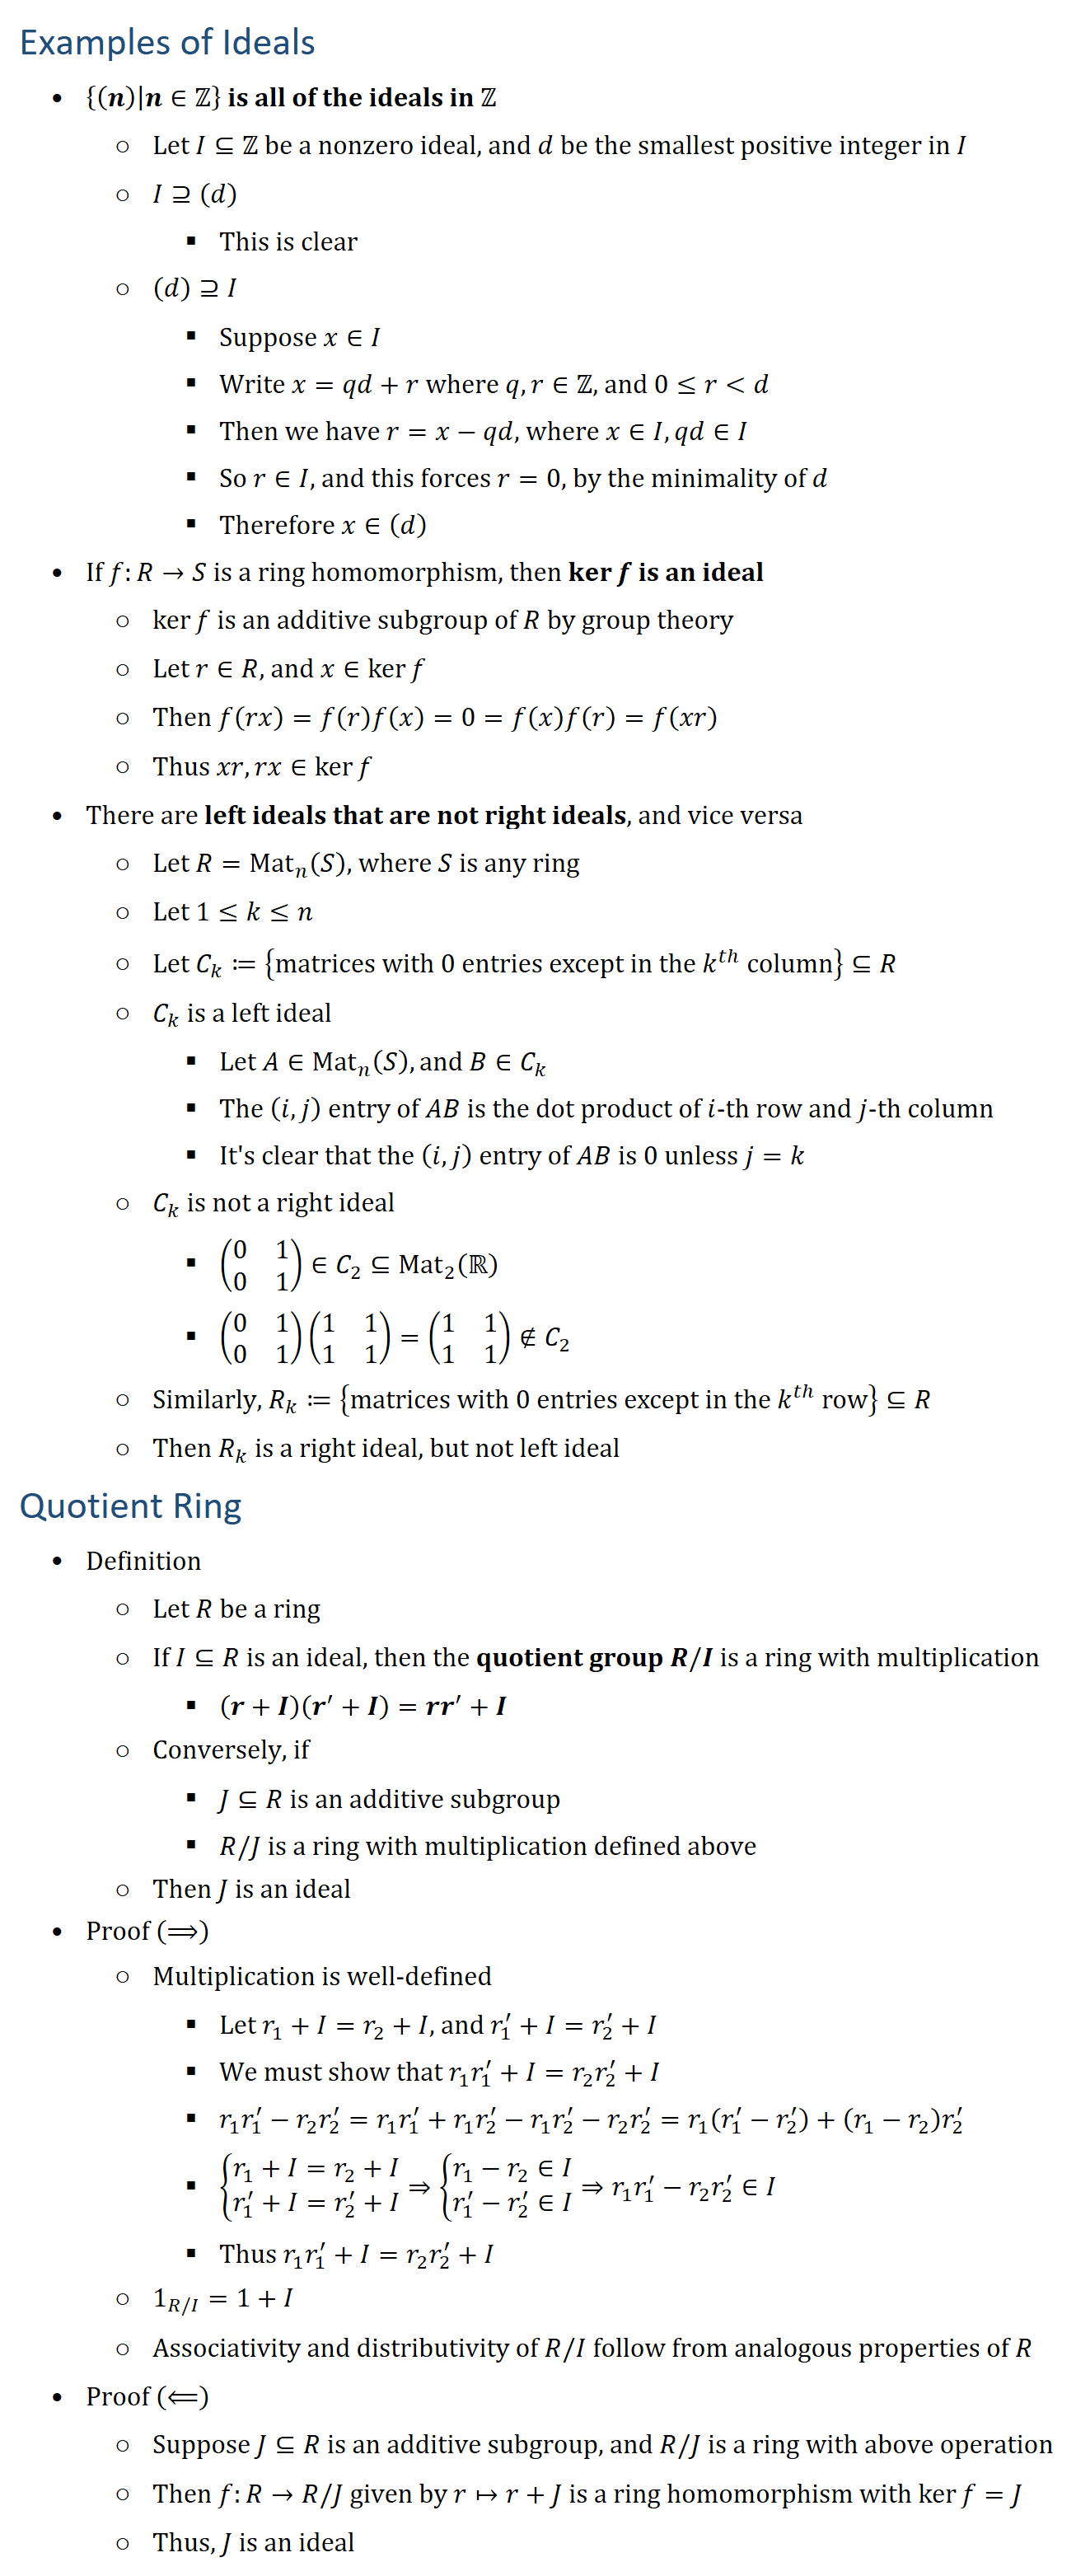 Examples of Ideals • {(n)│n∈Z is all of the ideals in Z ○ Let I⊆Z be a nonzero ideal, and d be the smallest positive integer in I ○ I⊇(d) § This is clear ○ (d)⊇I § Suppose x∈I § Write x=qd+r where q,r∈Z, and 0≤rd § Then we have r=x−qd, where x∈I,qd∈I § So r∈I, and this forces r=0, by the minimality of d § Therefore x∈(d) • If f:R→S is a ring homomorphism, then kerf is an ideal ○ kerf is an additive subgroup of R by group theory ○ Let r∈R, and x∈kerf ○ Then f(rx)=f(r)f(x)=0=f(x)f(r)=f(xr) ○ Thus xr,rx∈kerf • There are left ideals that are not right ideals, and vice versa ○ Let R=Mat_n (S), where S is any ring ○ Let 1≤k≤n ○ Let C_k≔{matrices with 0 entries except in the k^th column}⊆R ○ C_k is a left ideal § Let A∈Mat_n (S), and B∈C_k § The (i,j) entry of AB is the dot product of i-th row and j-th column § It s clear that the (i,j) entry of AB is 0 unless j=k ○ C_k is not a right ideal § (■8(0&1@0&1))∈C_2⊆Mat_2 (R § (■8(0&1@0&1))(■8(1&1@1&1))=(■8(1&1@1&1))∉C_2 ○ Similarly, R_k≔{matrices with 0 entries except in the k^th row}⊆R ○ Then R_k is a right ideal, but not left ideal Quotient Ring • Definition ○ Let R be a ring ○ If I⊆R is an ideal, then the quotient group R\/I is a ring with multiplication § (r+I)(r^′+I)=rr^′+I ○ Conversely, if § J⊆R is an additive subgroup § R\/J is a ring with multiplication defined above ○ Then J is an ideal • Proof (⟹) ○ Multiplication is well-defined § Let r_1+I=r_2+I, and r_1^′+I=r_2^′+I § We must show that r_1 r_1^′+I=r_2 r_2^′+I § r_1 r_1^′−r_2 r_2^′=r_1 r_1^′+r_1 r_2^′−r_1 r_2^′−r_2 r_2^′=r_1 (r_1^′−r_2^′ )+(r_1−r_2 ) r_2^′ § {█(r_1+I=r_2+I@r_1^′+I=r_2^′+I)┤⇒{█(r_1−r_2∈I@r_1^′−r_2^′∈I)┤⇒r_1 r_1^′−r_2 r_2^′∈I § Thus r_1 r_1^′+I=r_2 r_2^′+I ○ 1_(R/I)=1+I ○ Associativity and distributivity of R\/I follow from analogous properties of R • Proof (⟸) ○ Suppose J⊆R is an additive subgroup, and R\/J is a ring with above operation ○ Then f:R→R\/J given by r↦r+J is a ring homomorphism with kerf=J ○ Thus, J is an ideal